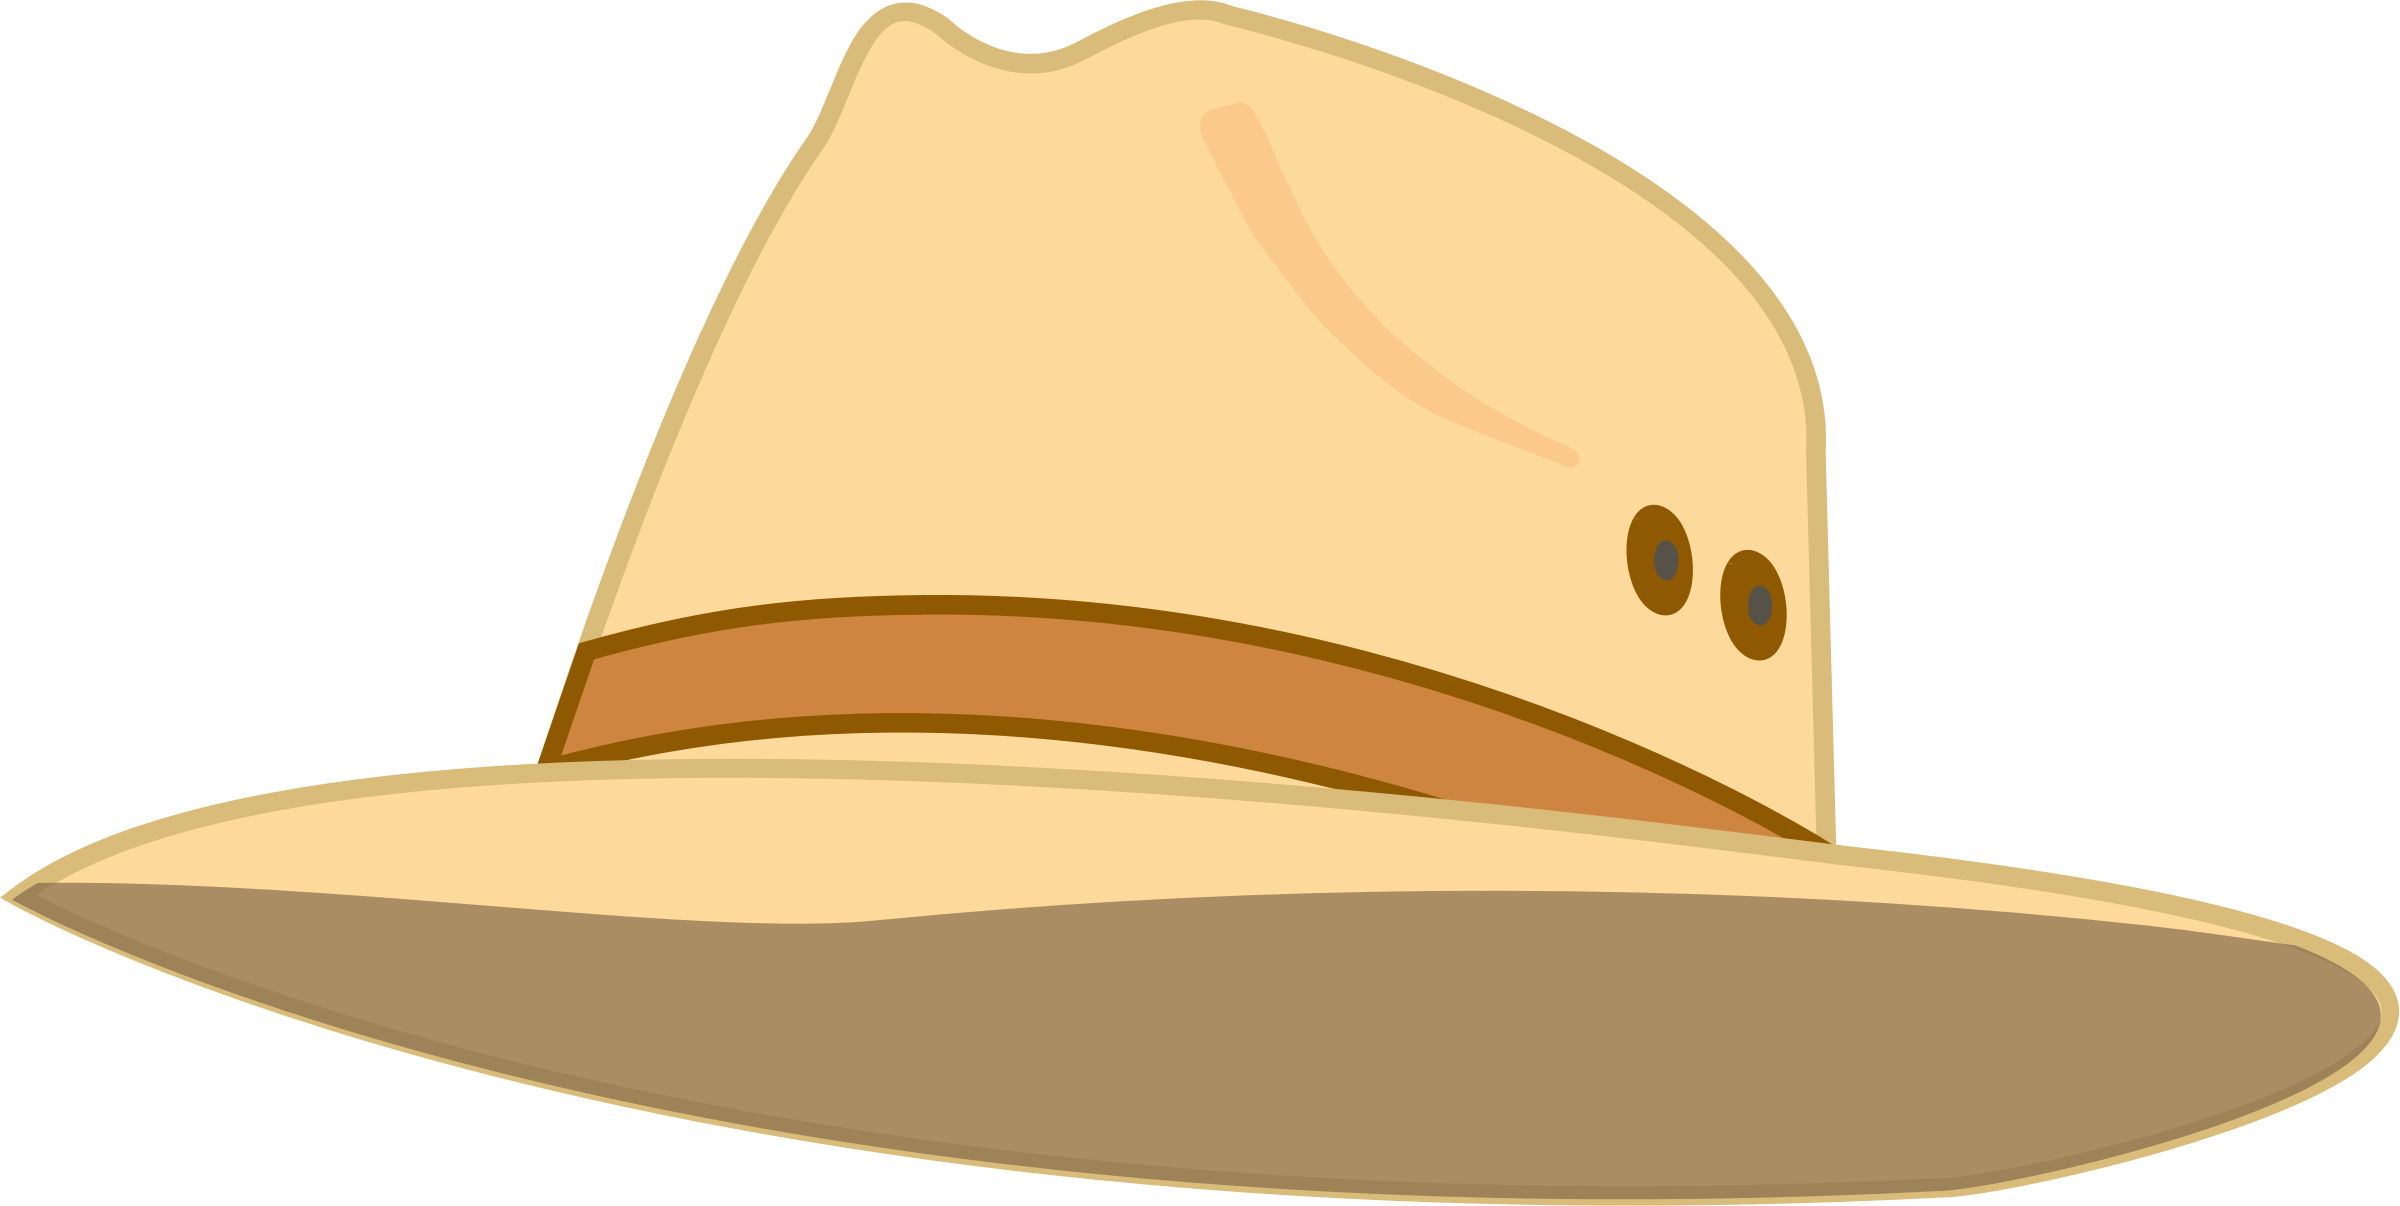 collection of hat. Hats clipart tourist